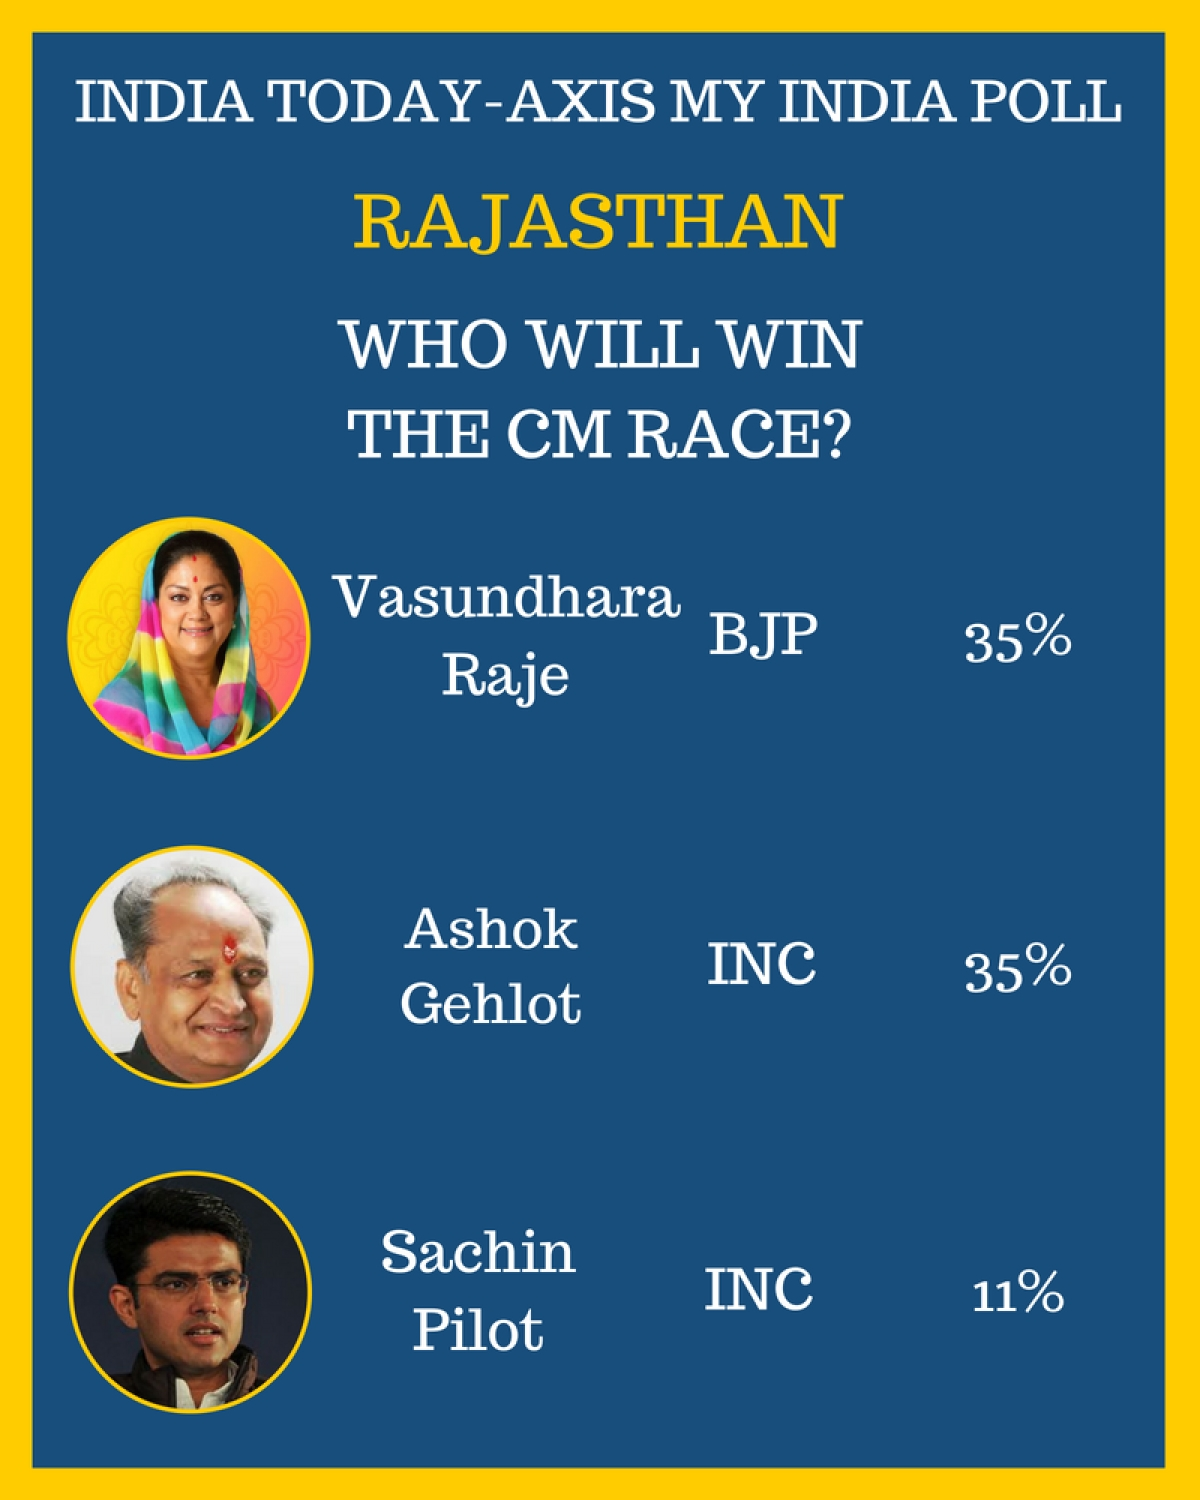 national-news-rajasthan-news-election-day-7th-dece